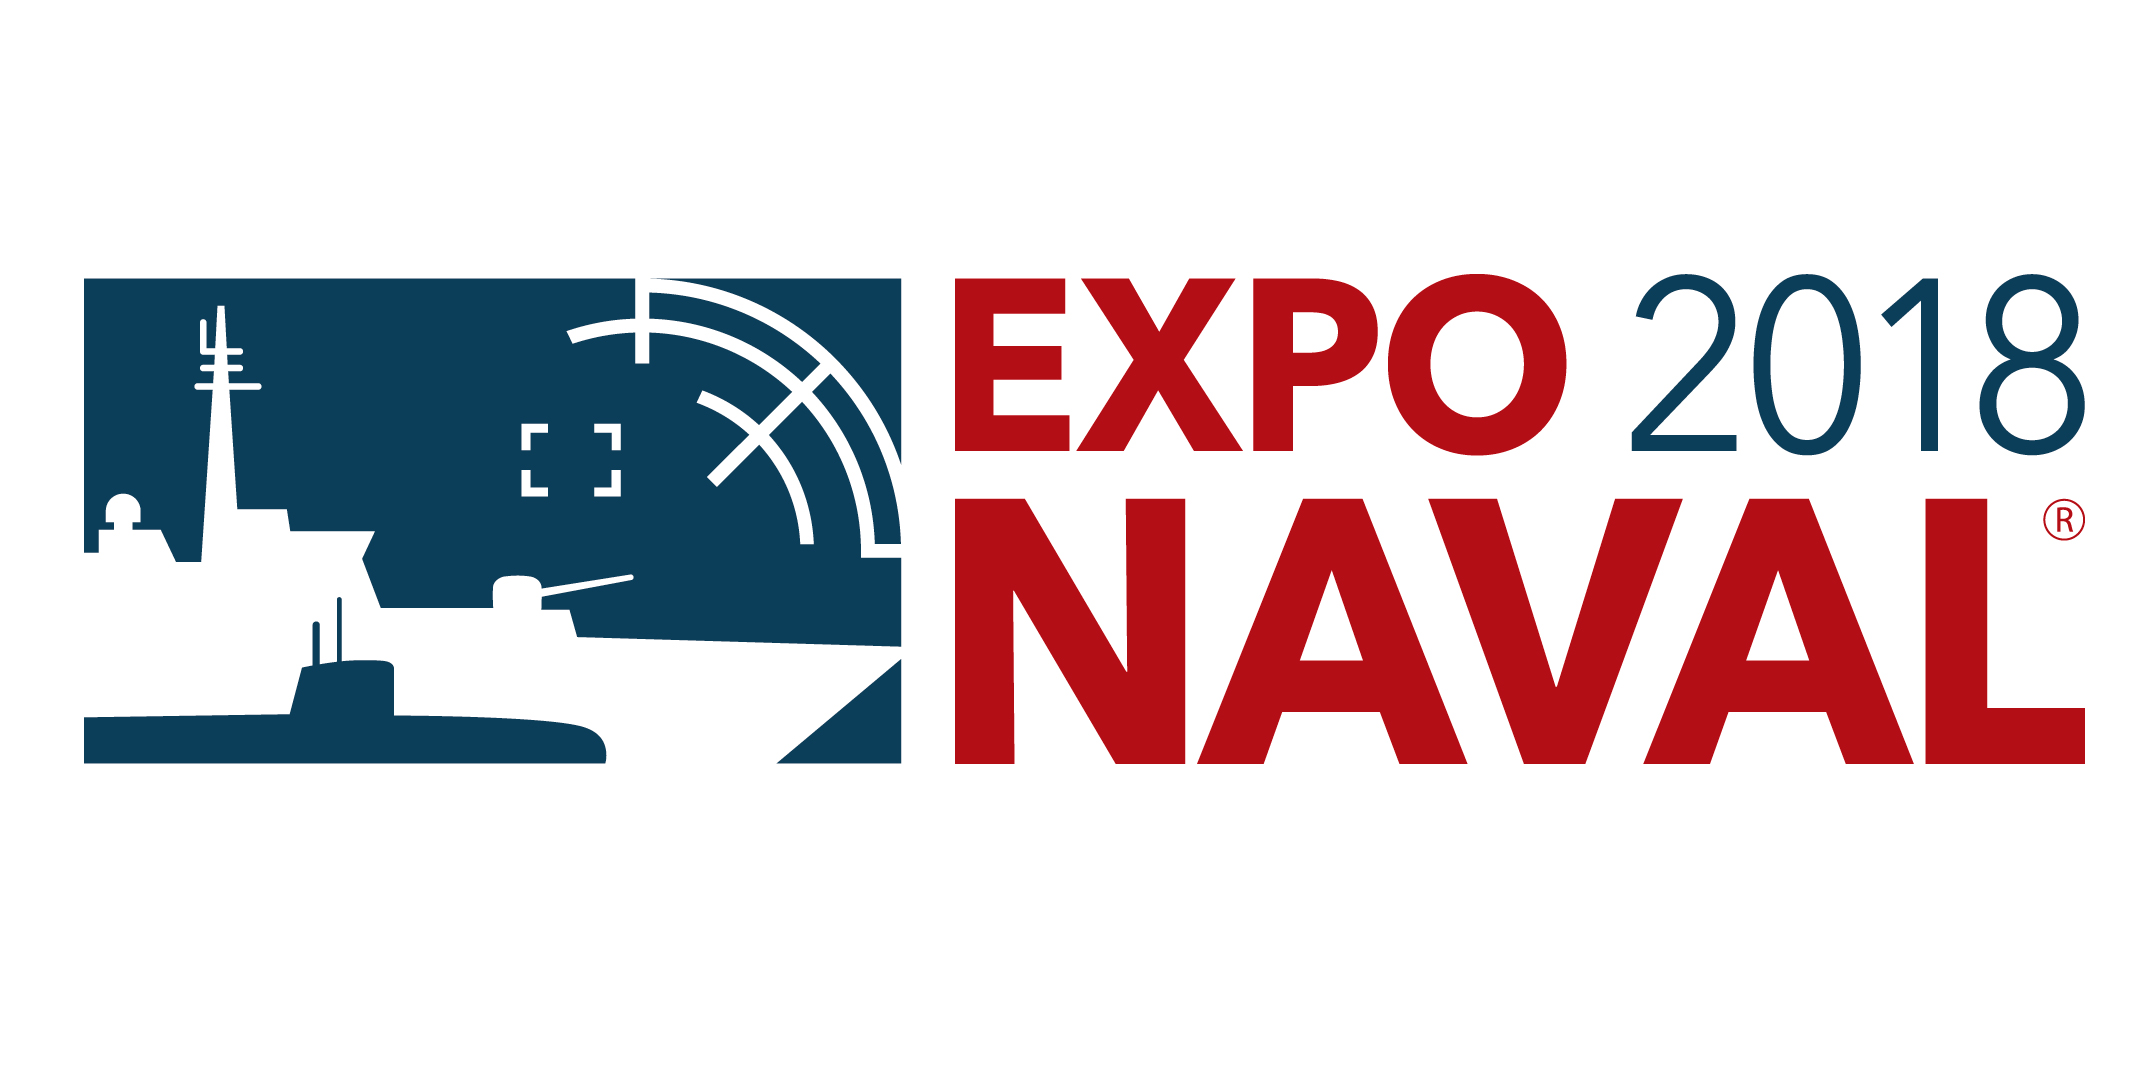 DTS will participate in EXPONAVAL 2018